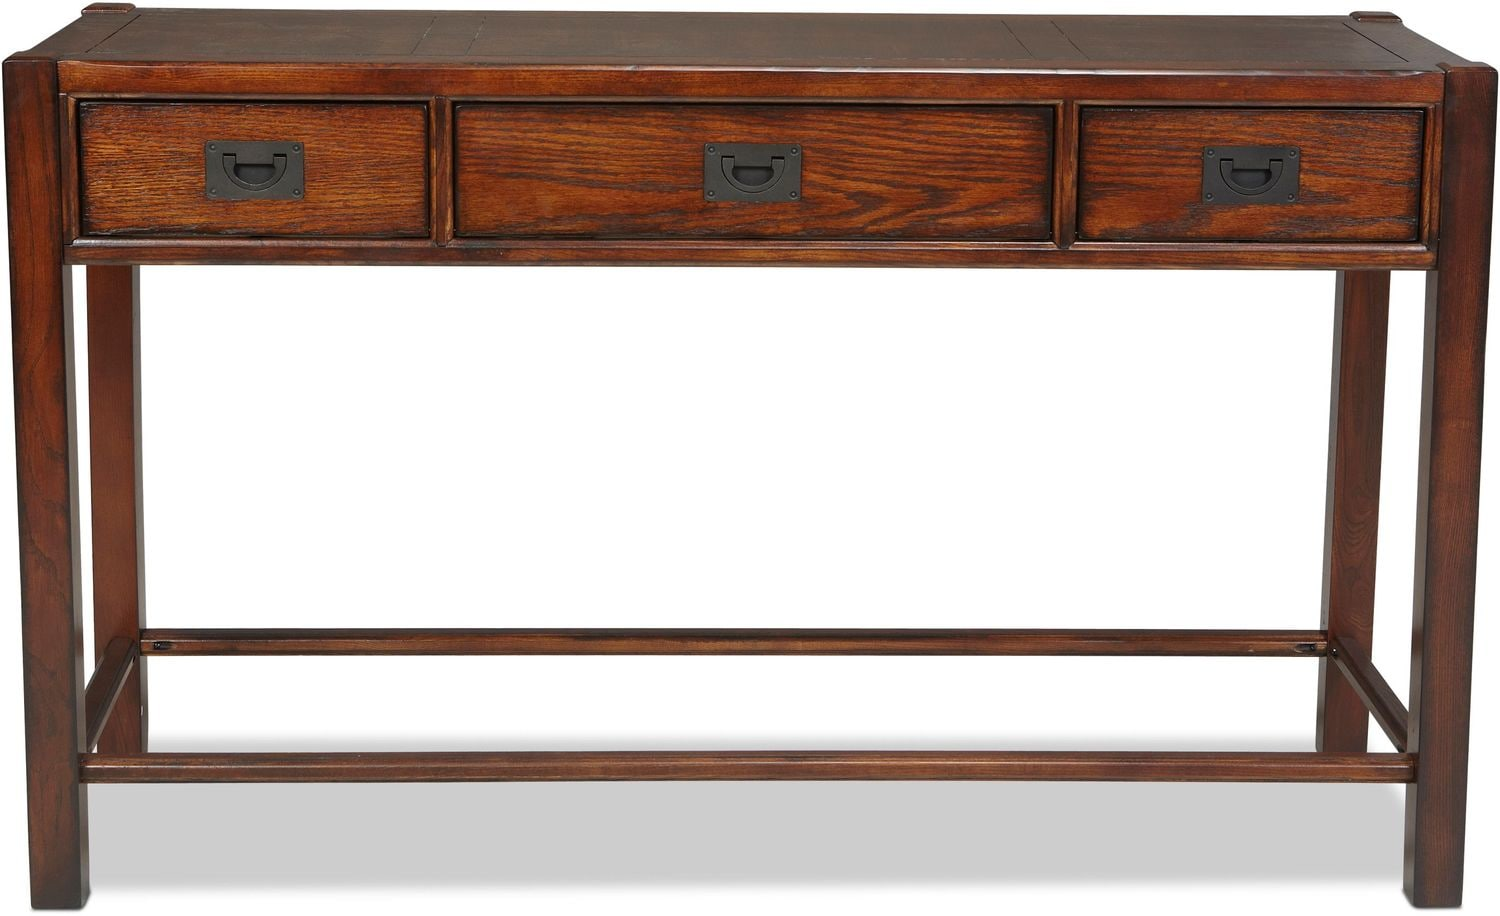 Sumpter Sofa Table - Distressed Chestnut